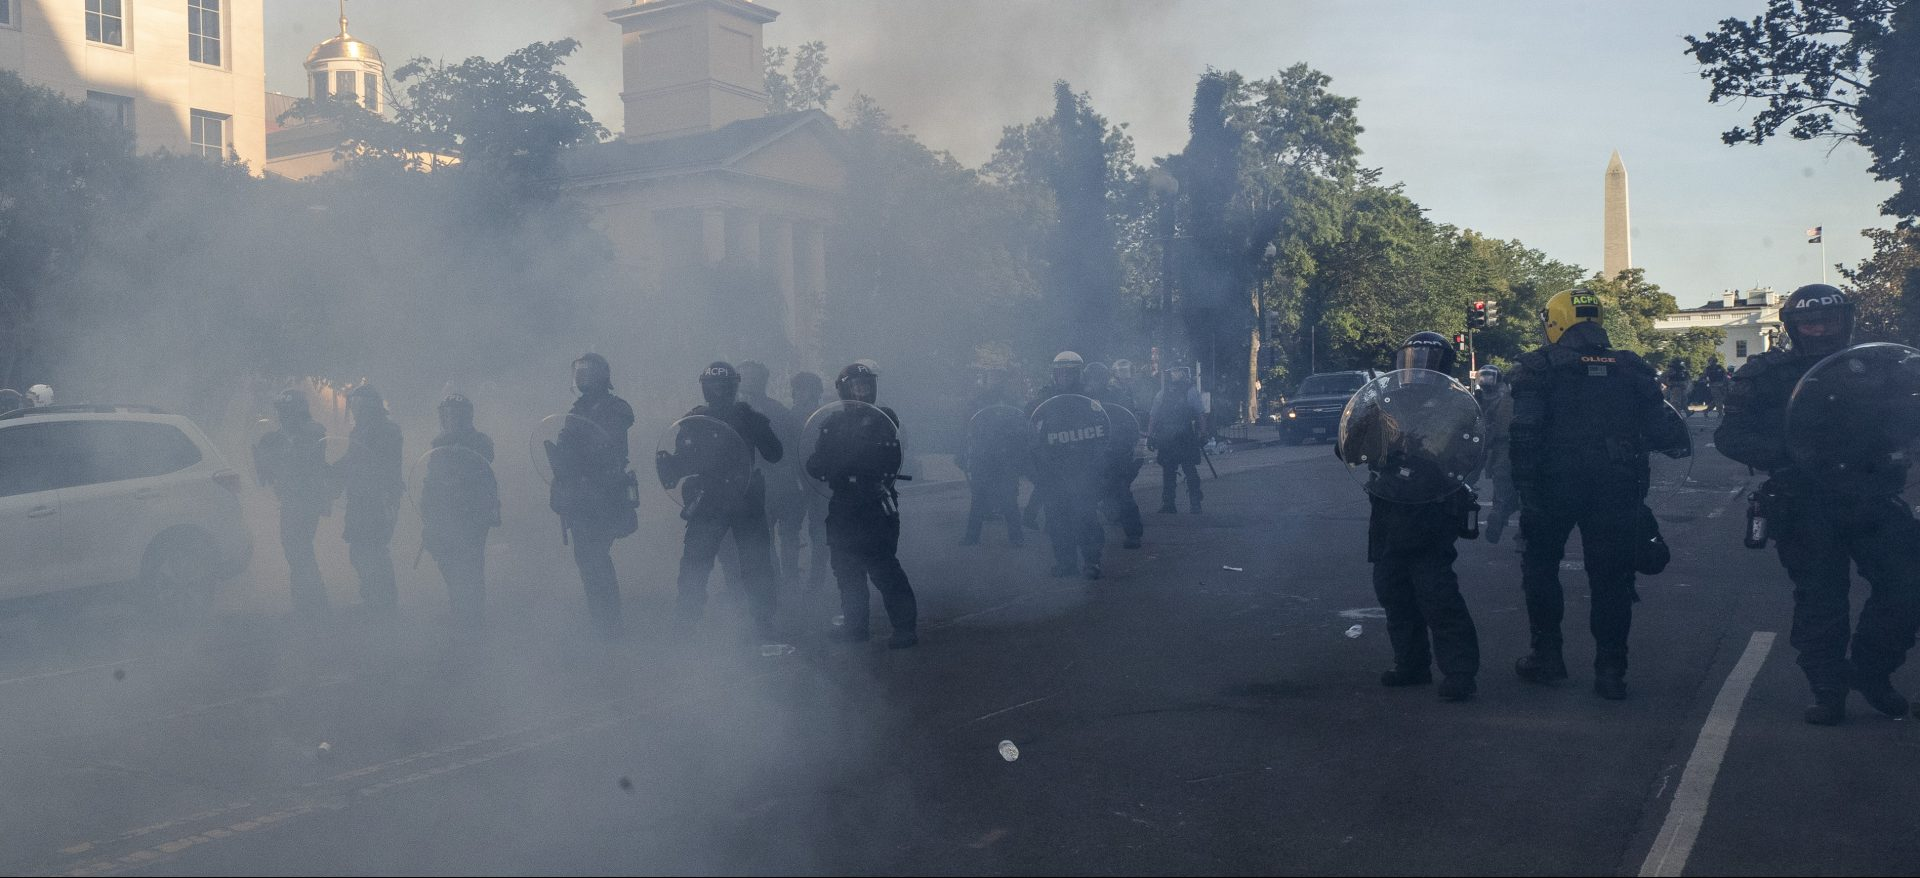 Tear gas floats in the air as a line of police move demonstrators away from St. John's Church across Lafayette Park from the White House, as they gather to protest the death of George Floyd, Monday, June 1, 2020, in Washington. Floyd died after being restrained by Minneapolis police officers.